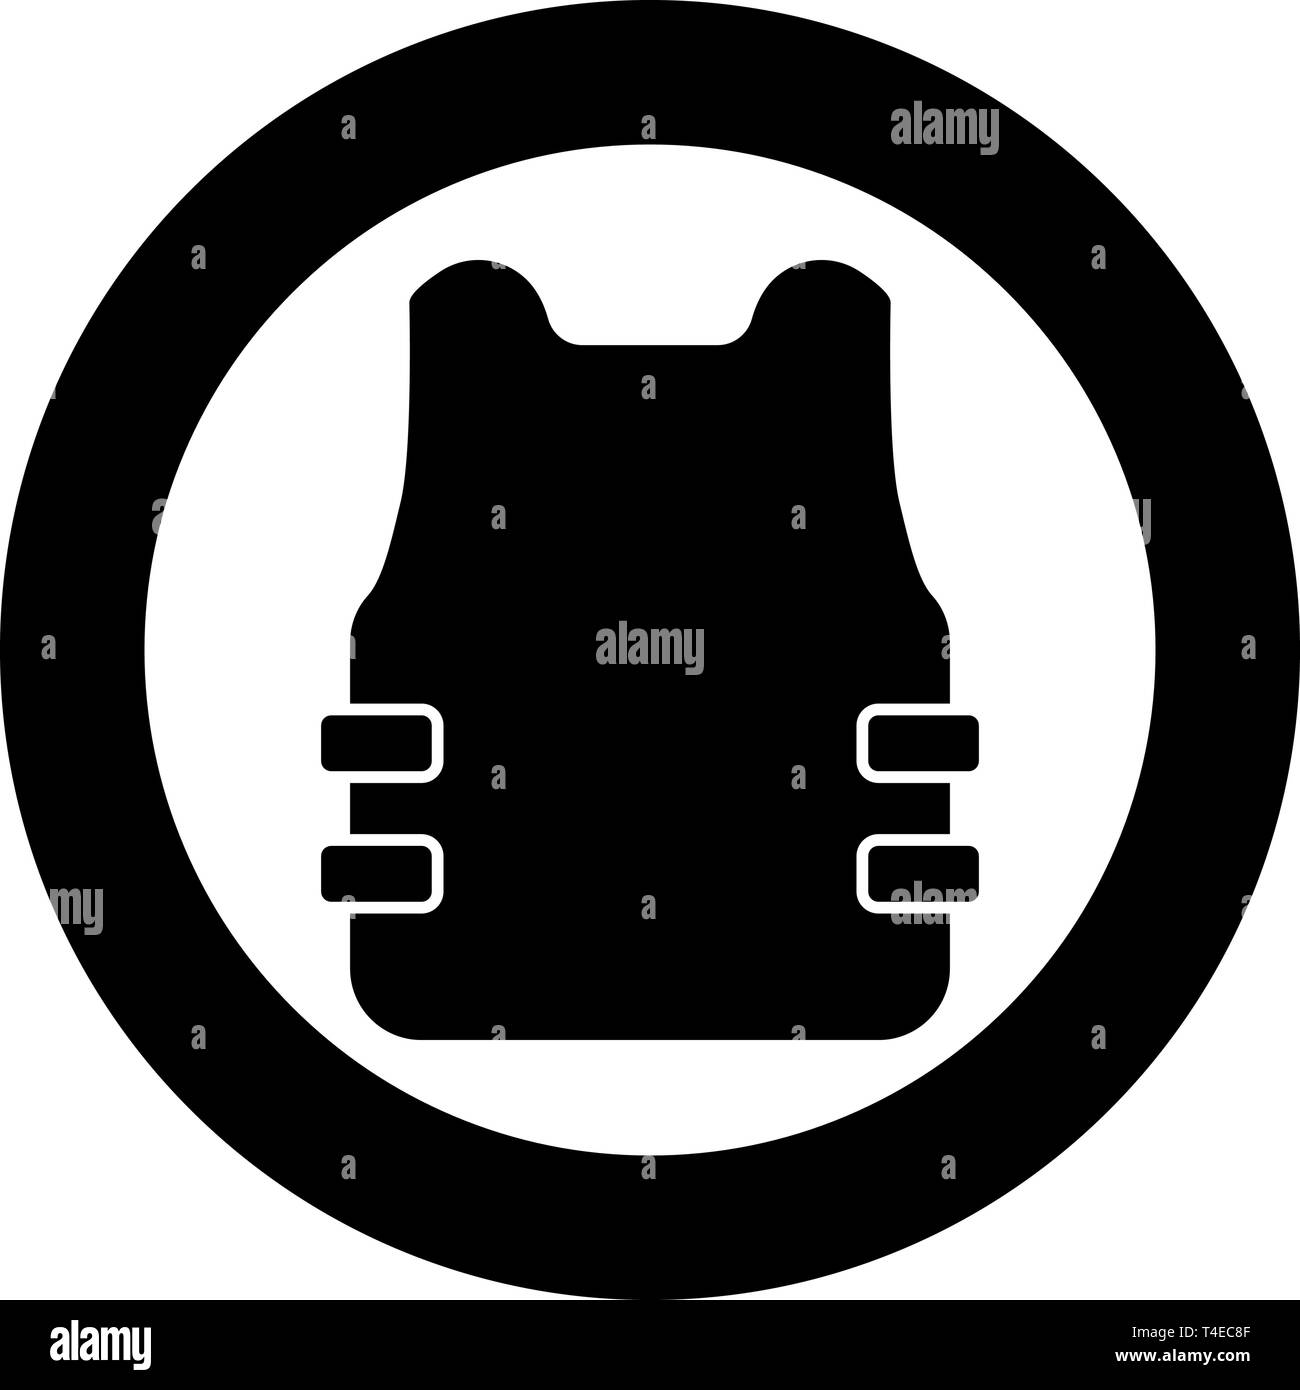 Bullet-proof vest flak jacket icon in circle round black color vector illustration flat style simple image - Stock Image